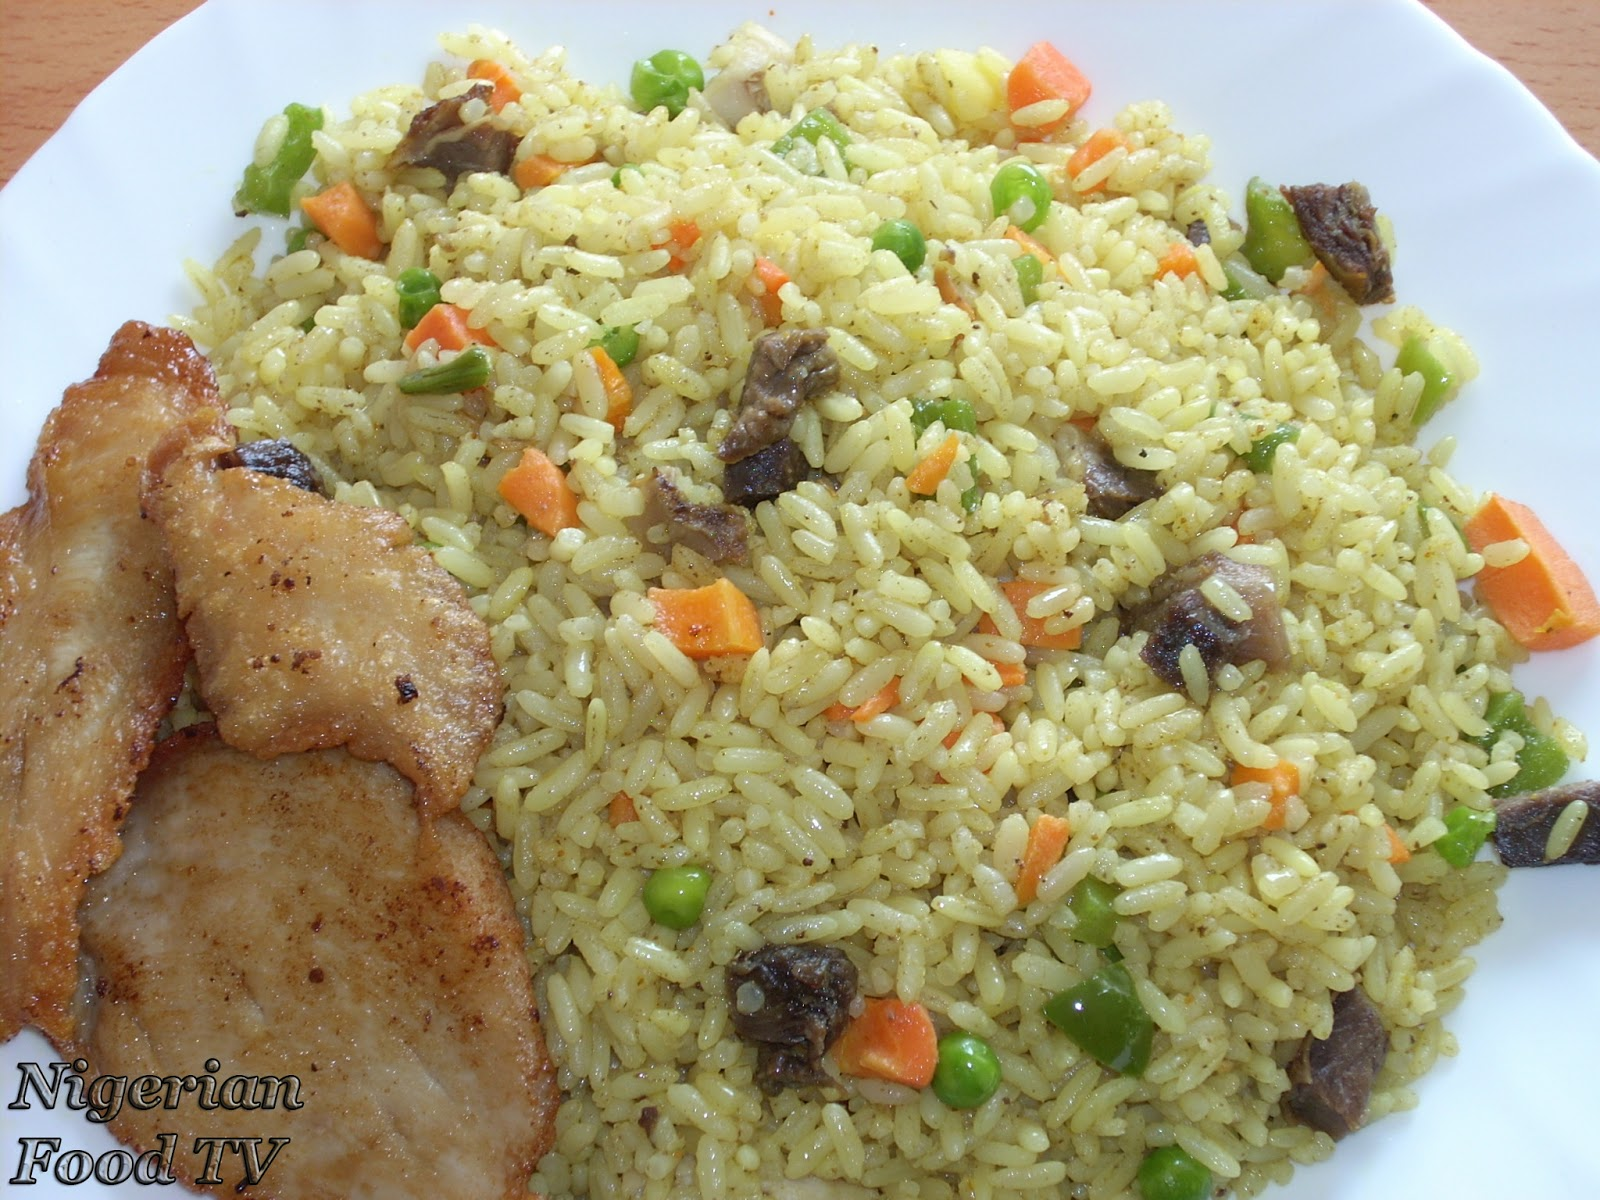 Nigerian Rice Recipes, Nigerian Rice meal ideas, nigerian rice, nigerian food tv, nigerian cuisine